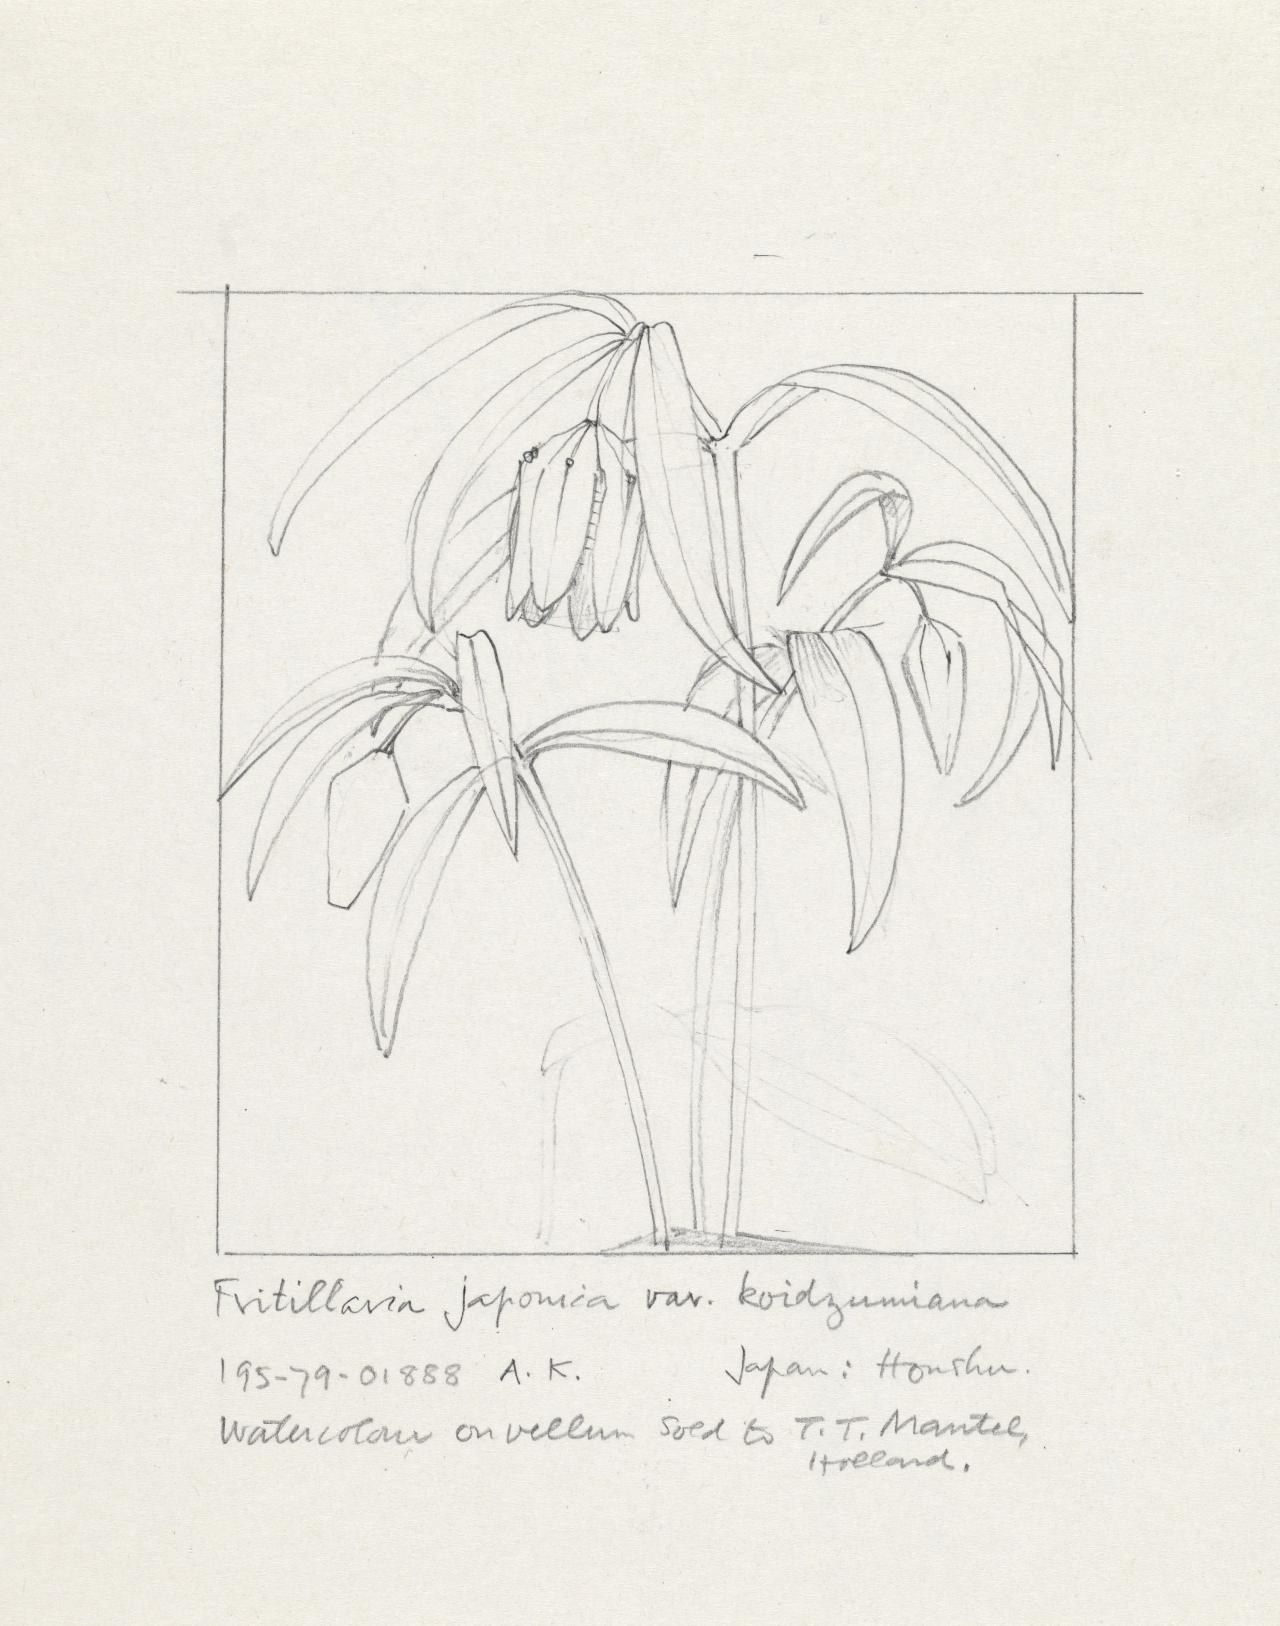 Working drawing for Fritillaria japonica var. koidzumiana